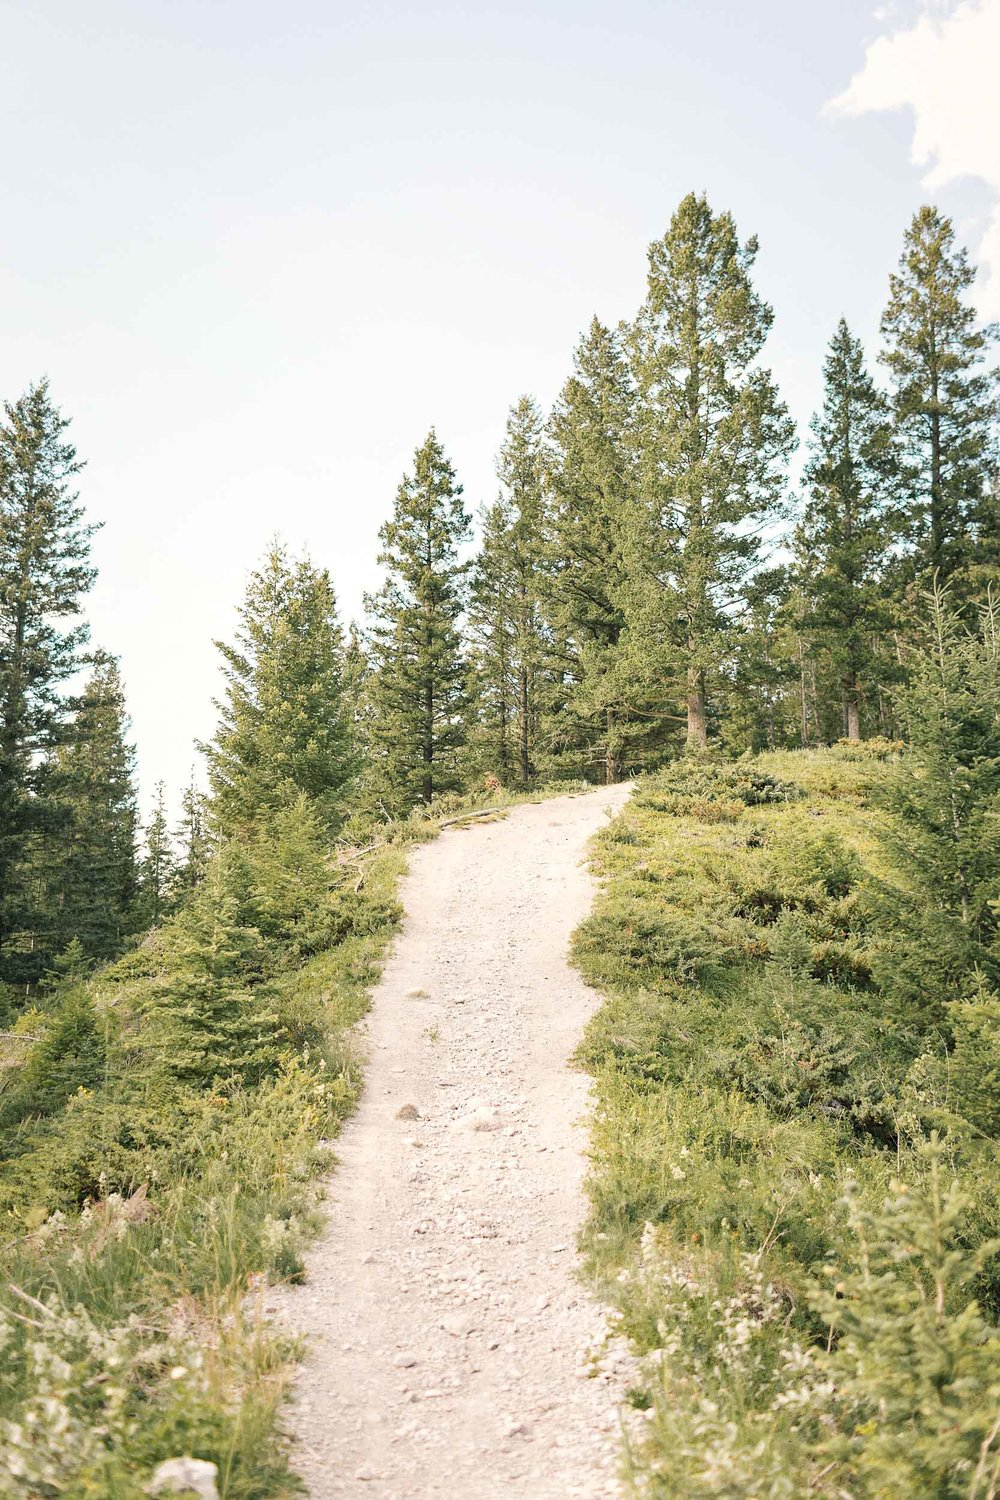 To get to the Canmore rope swing, walk just five minutes up this hill